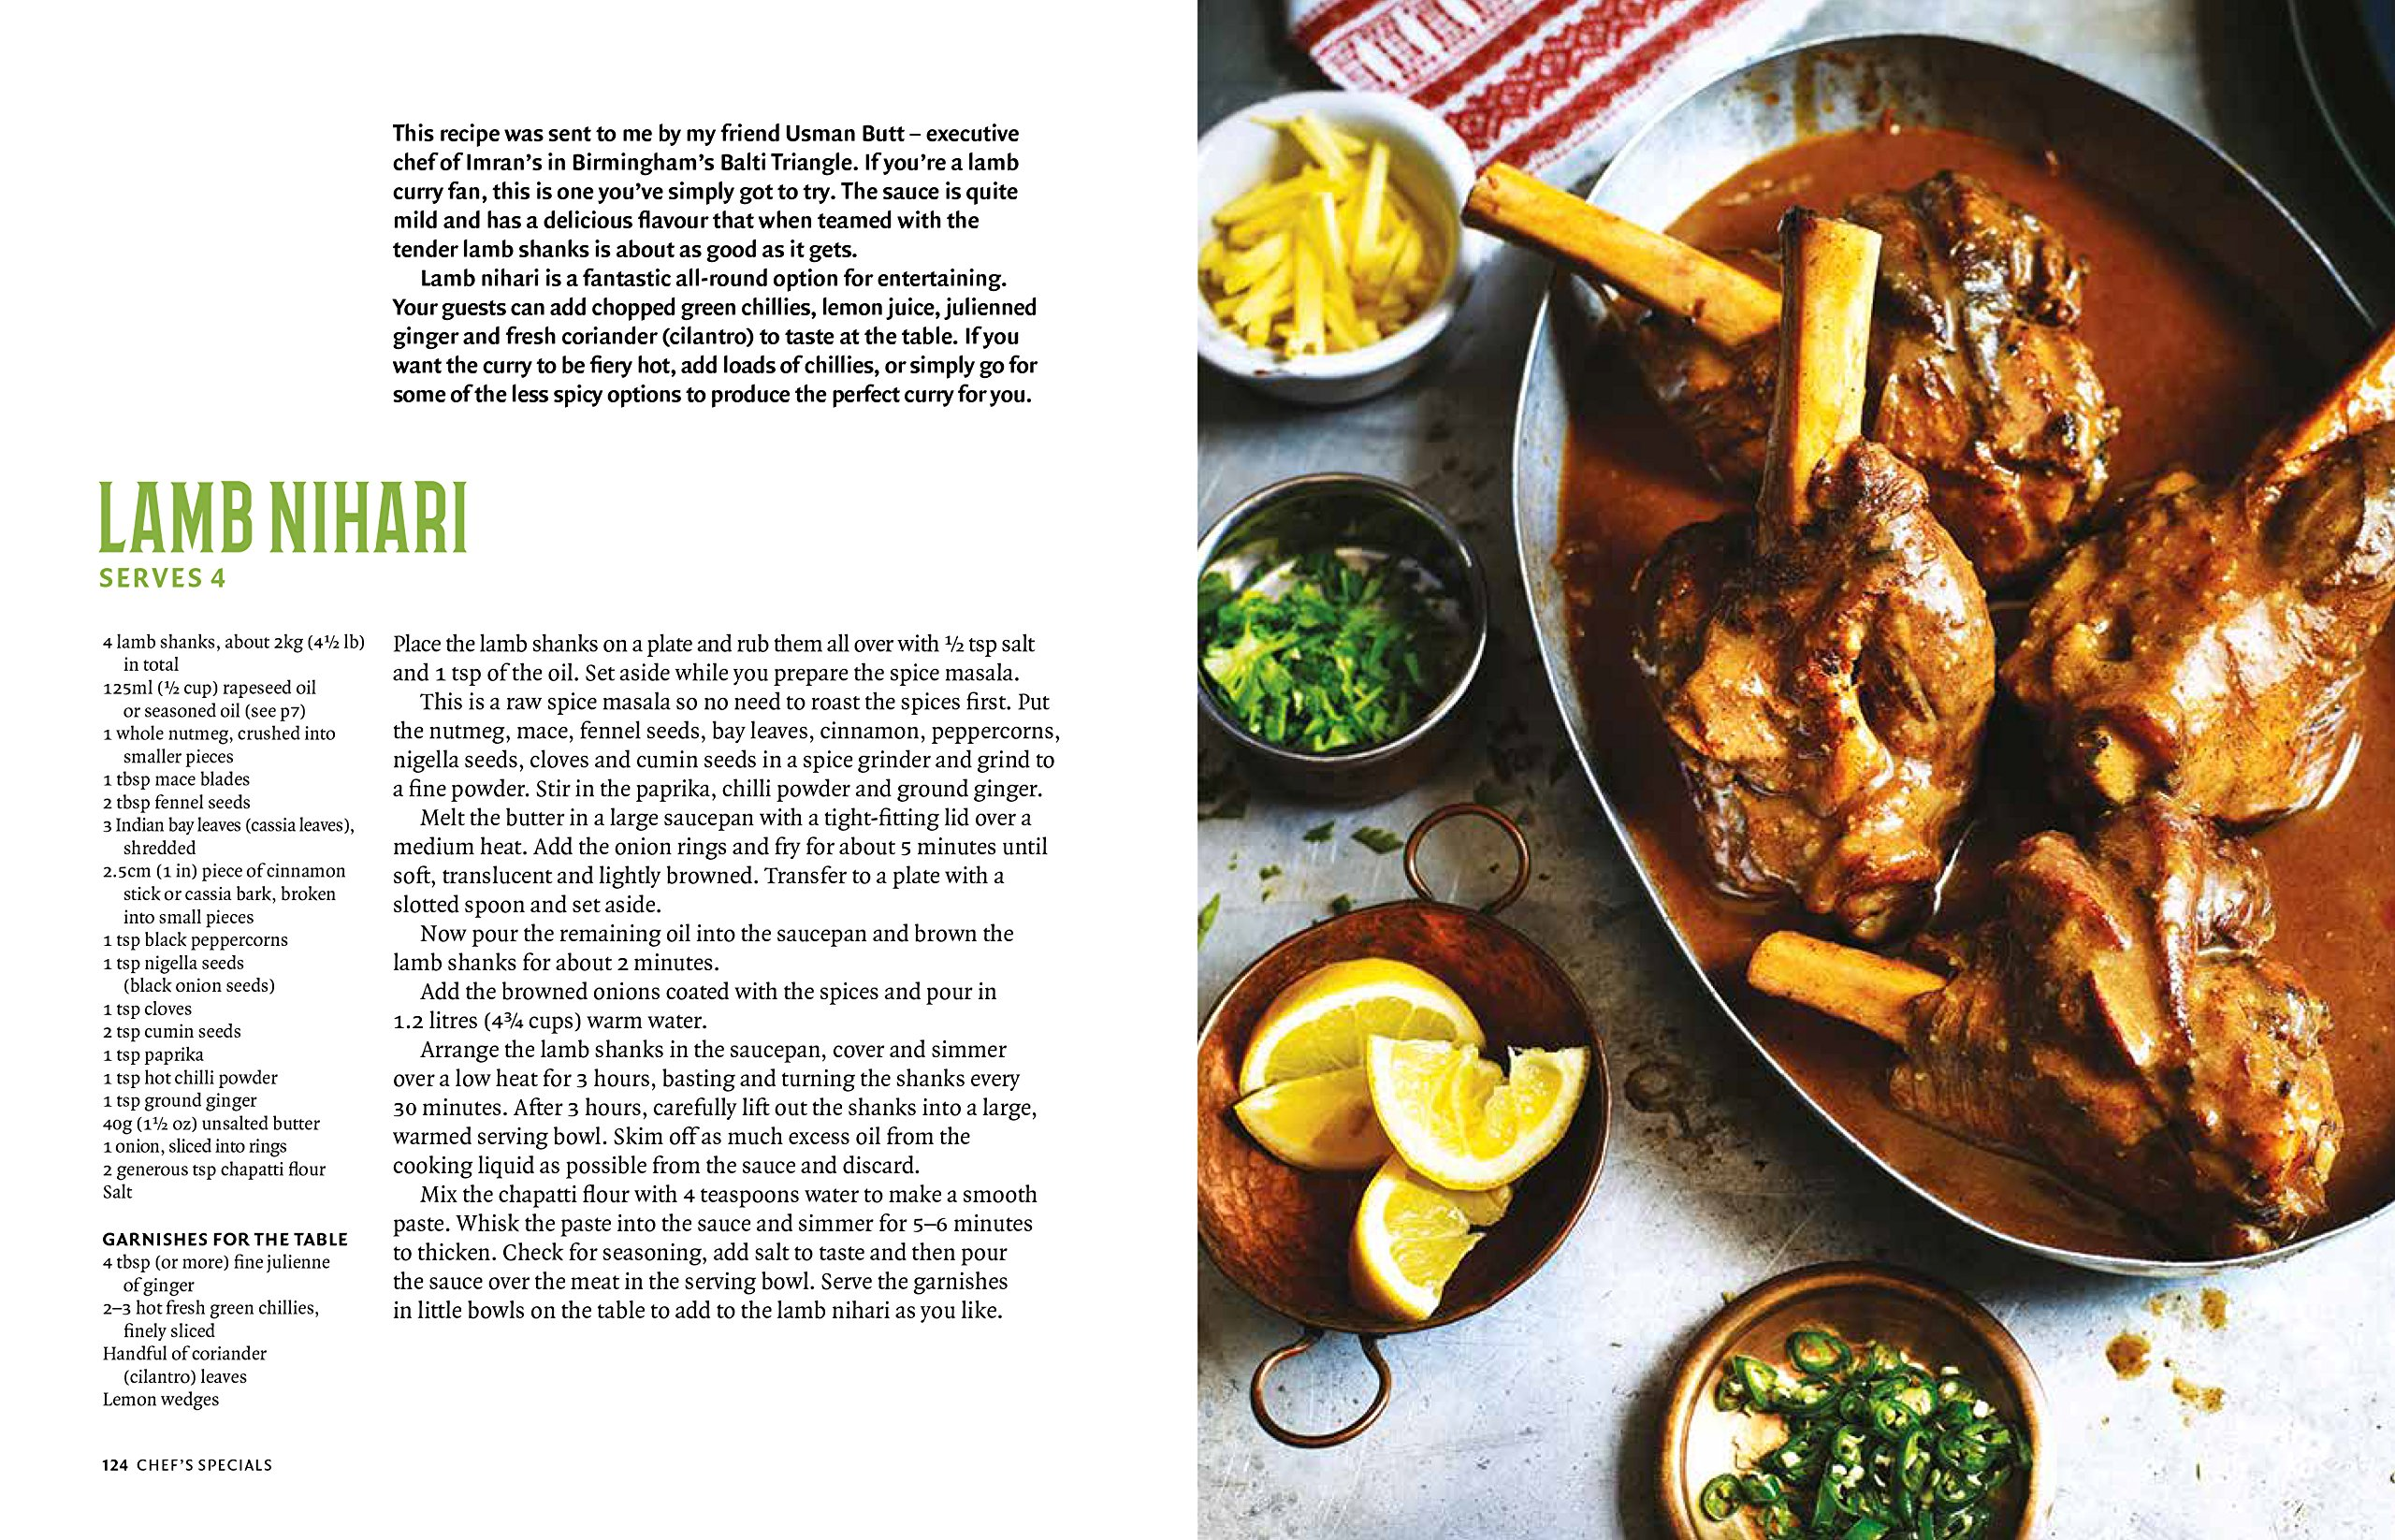 The Curry Guy: Recreate Over 100 of the Best British Indian Restaurant Recipes at Home 6